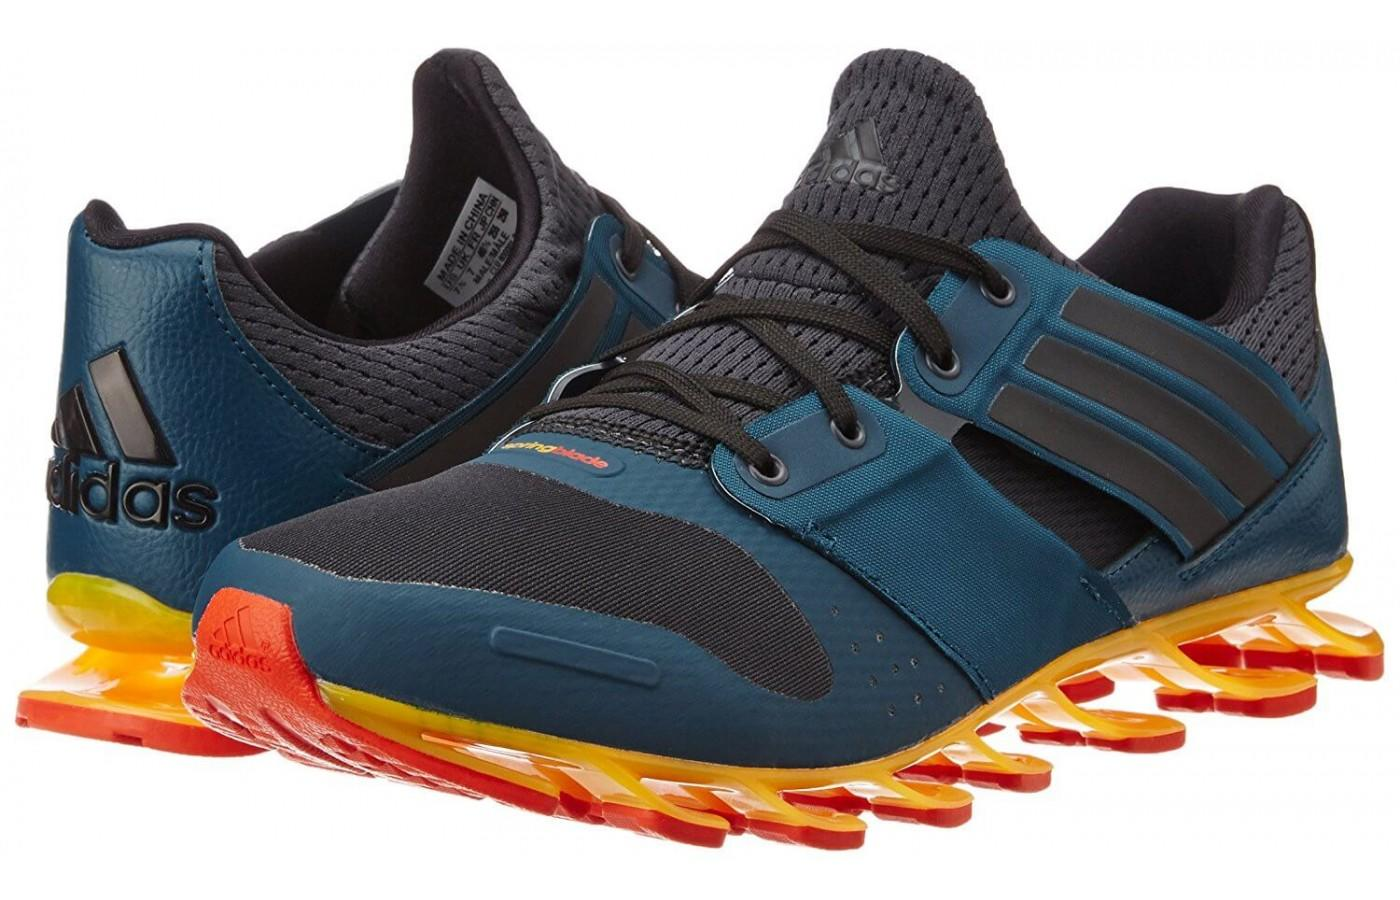 Springblade Solyce Hommes Adidas Chaussures De Course De Maille ZHww8nSv5